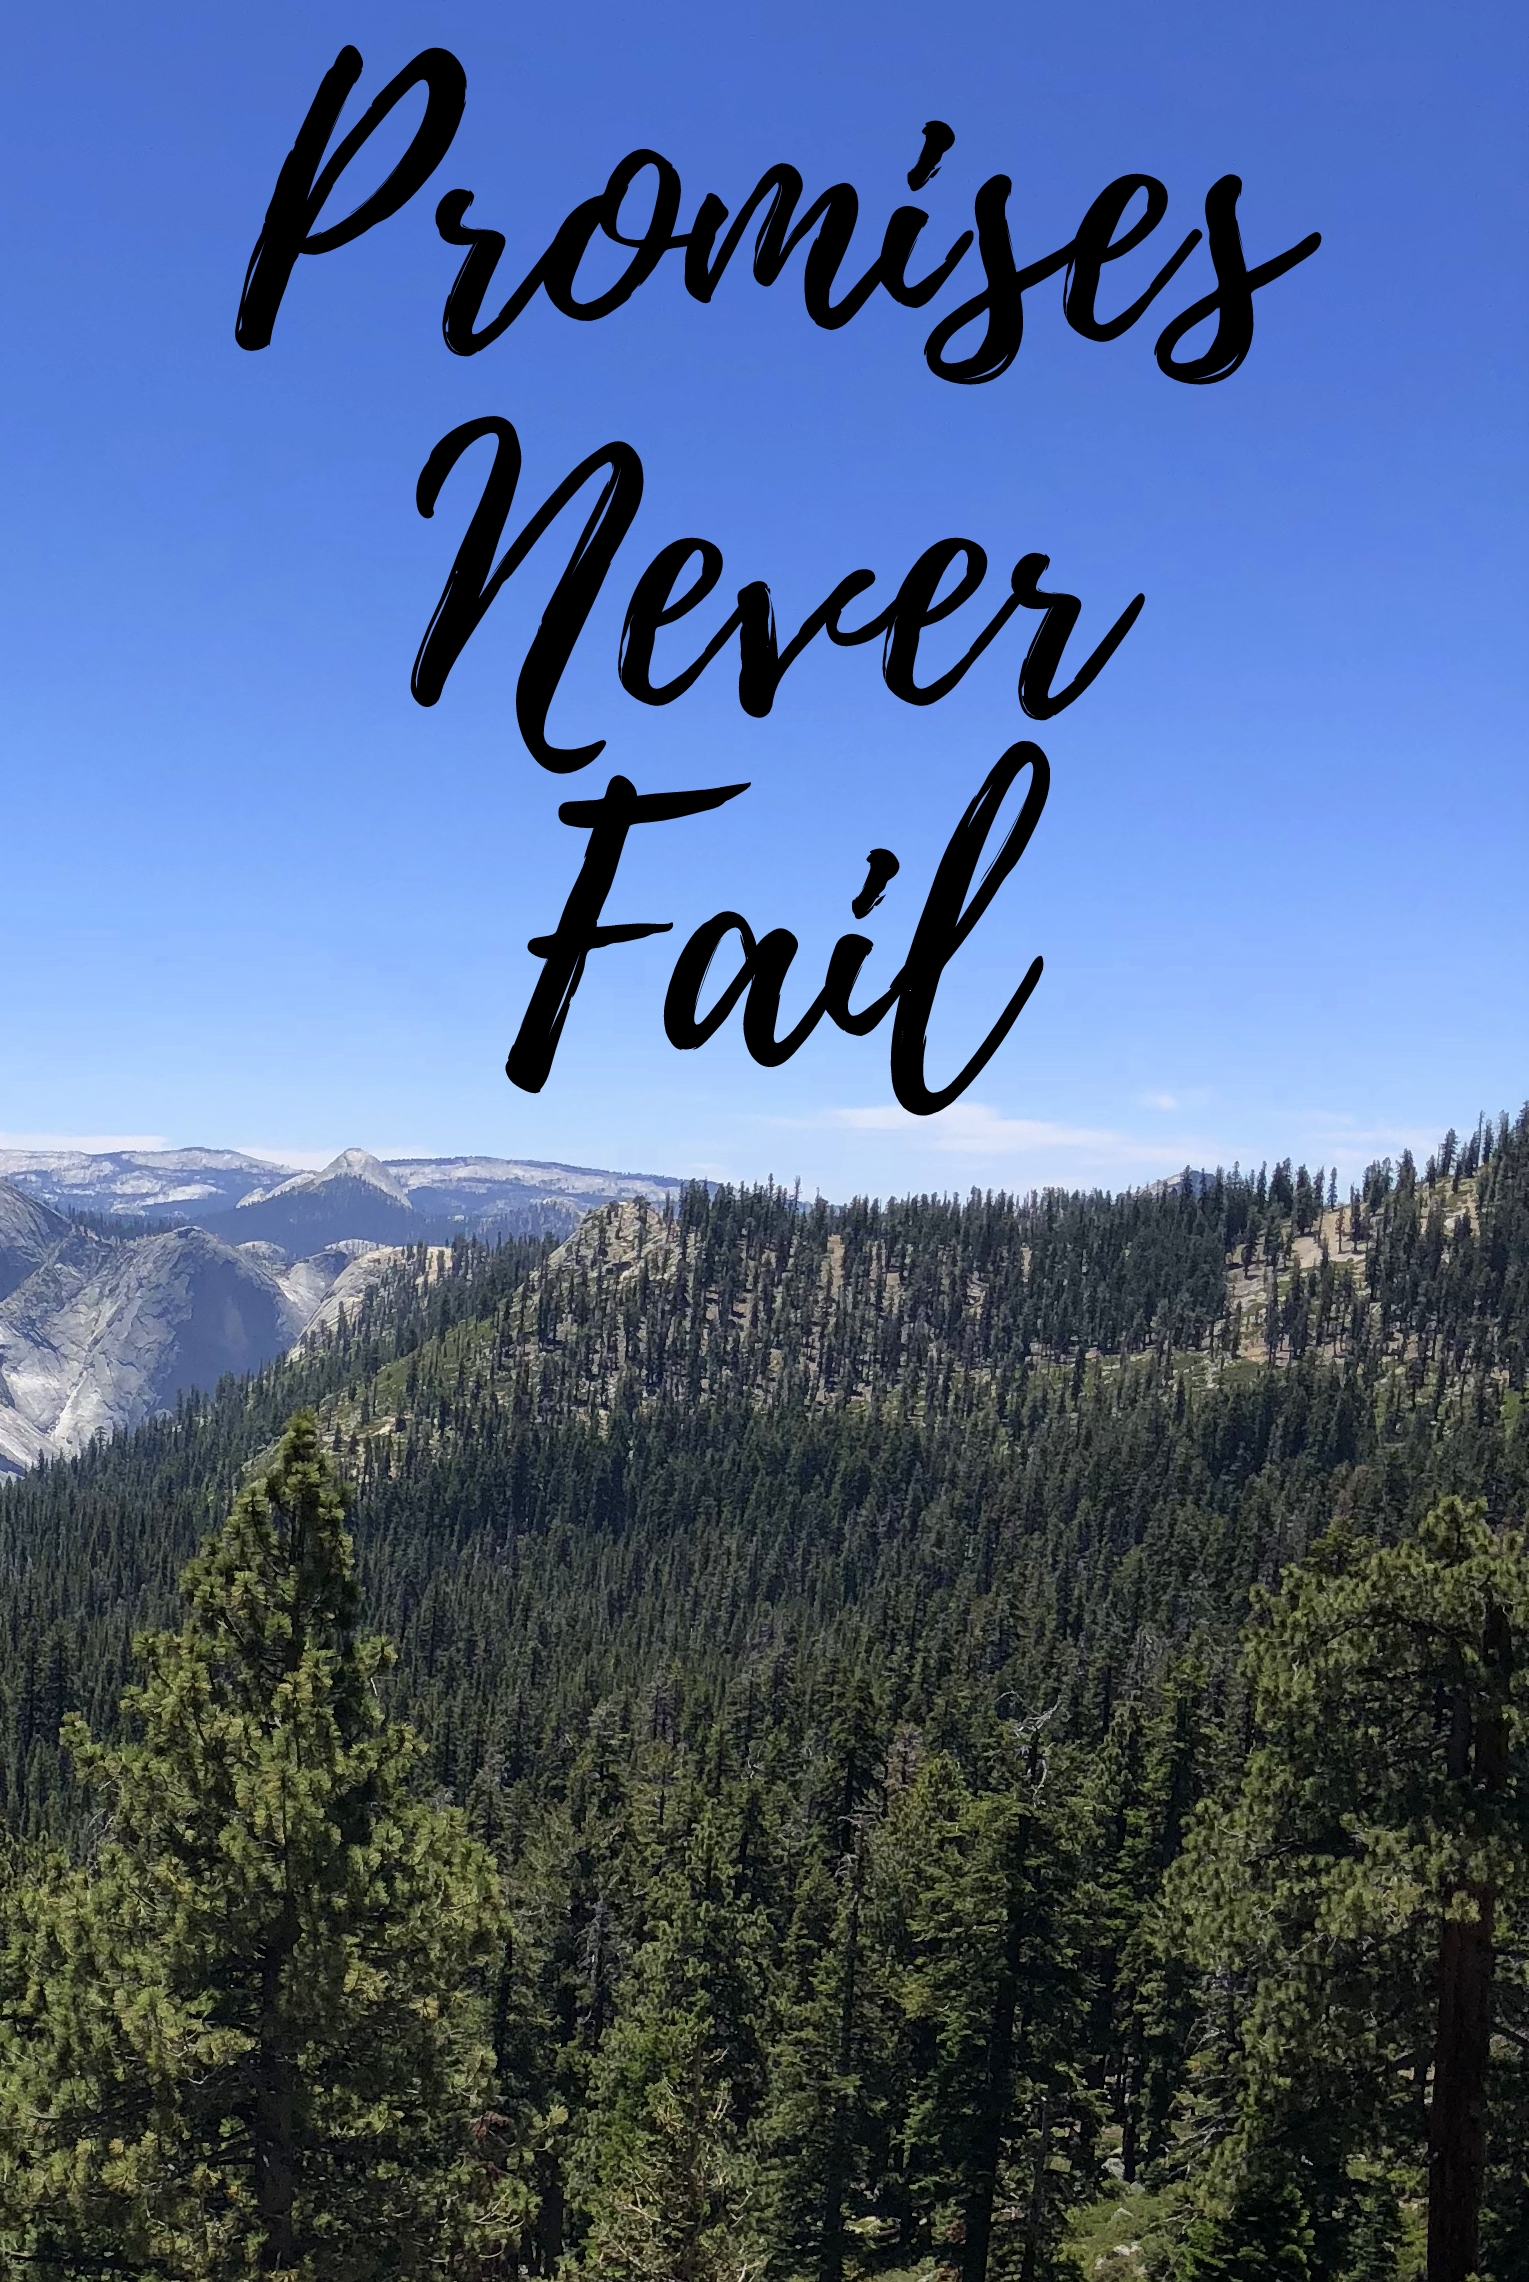 in due time blog promises never fail bethel church